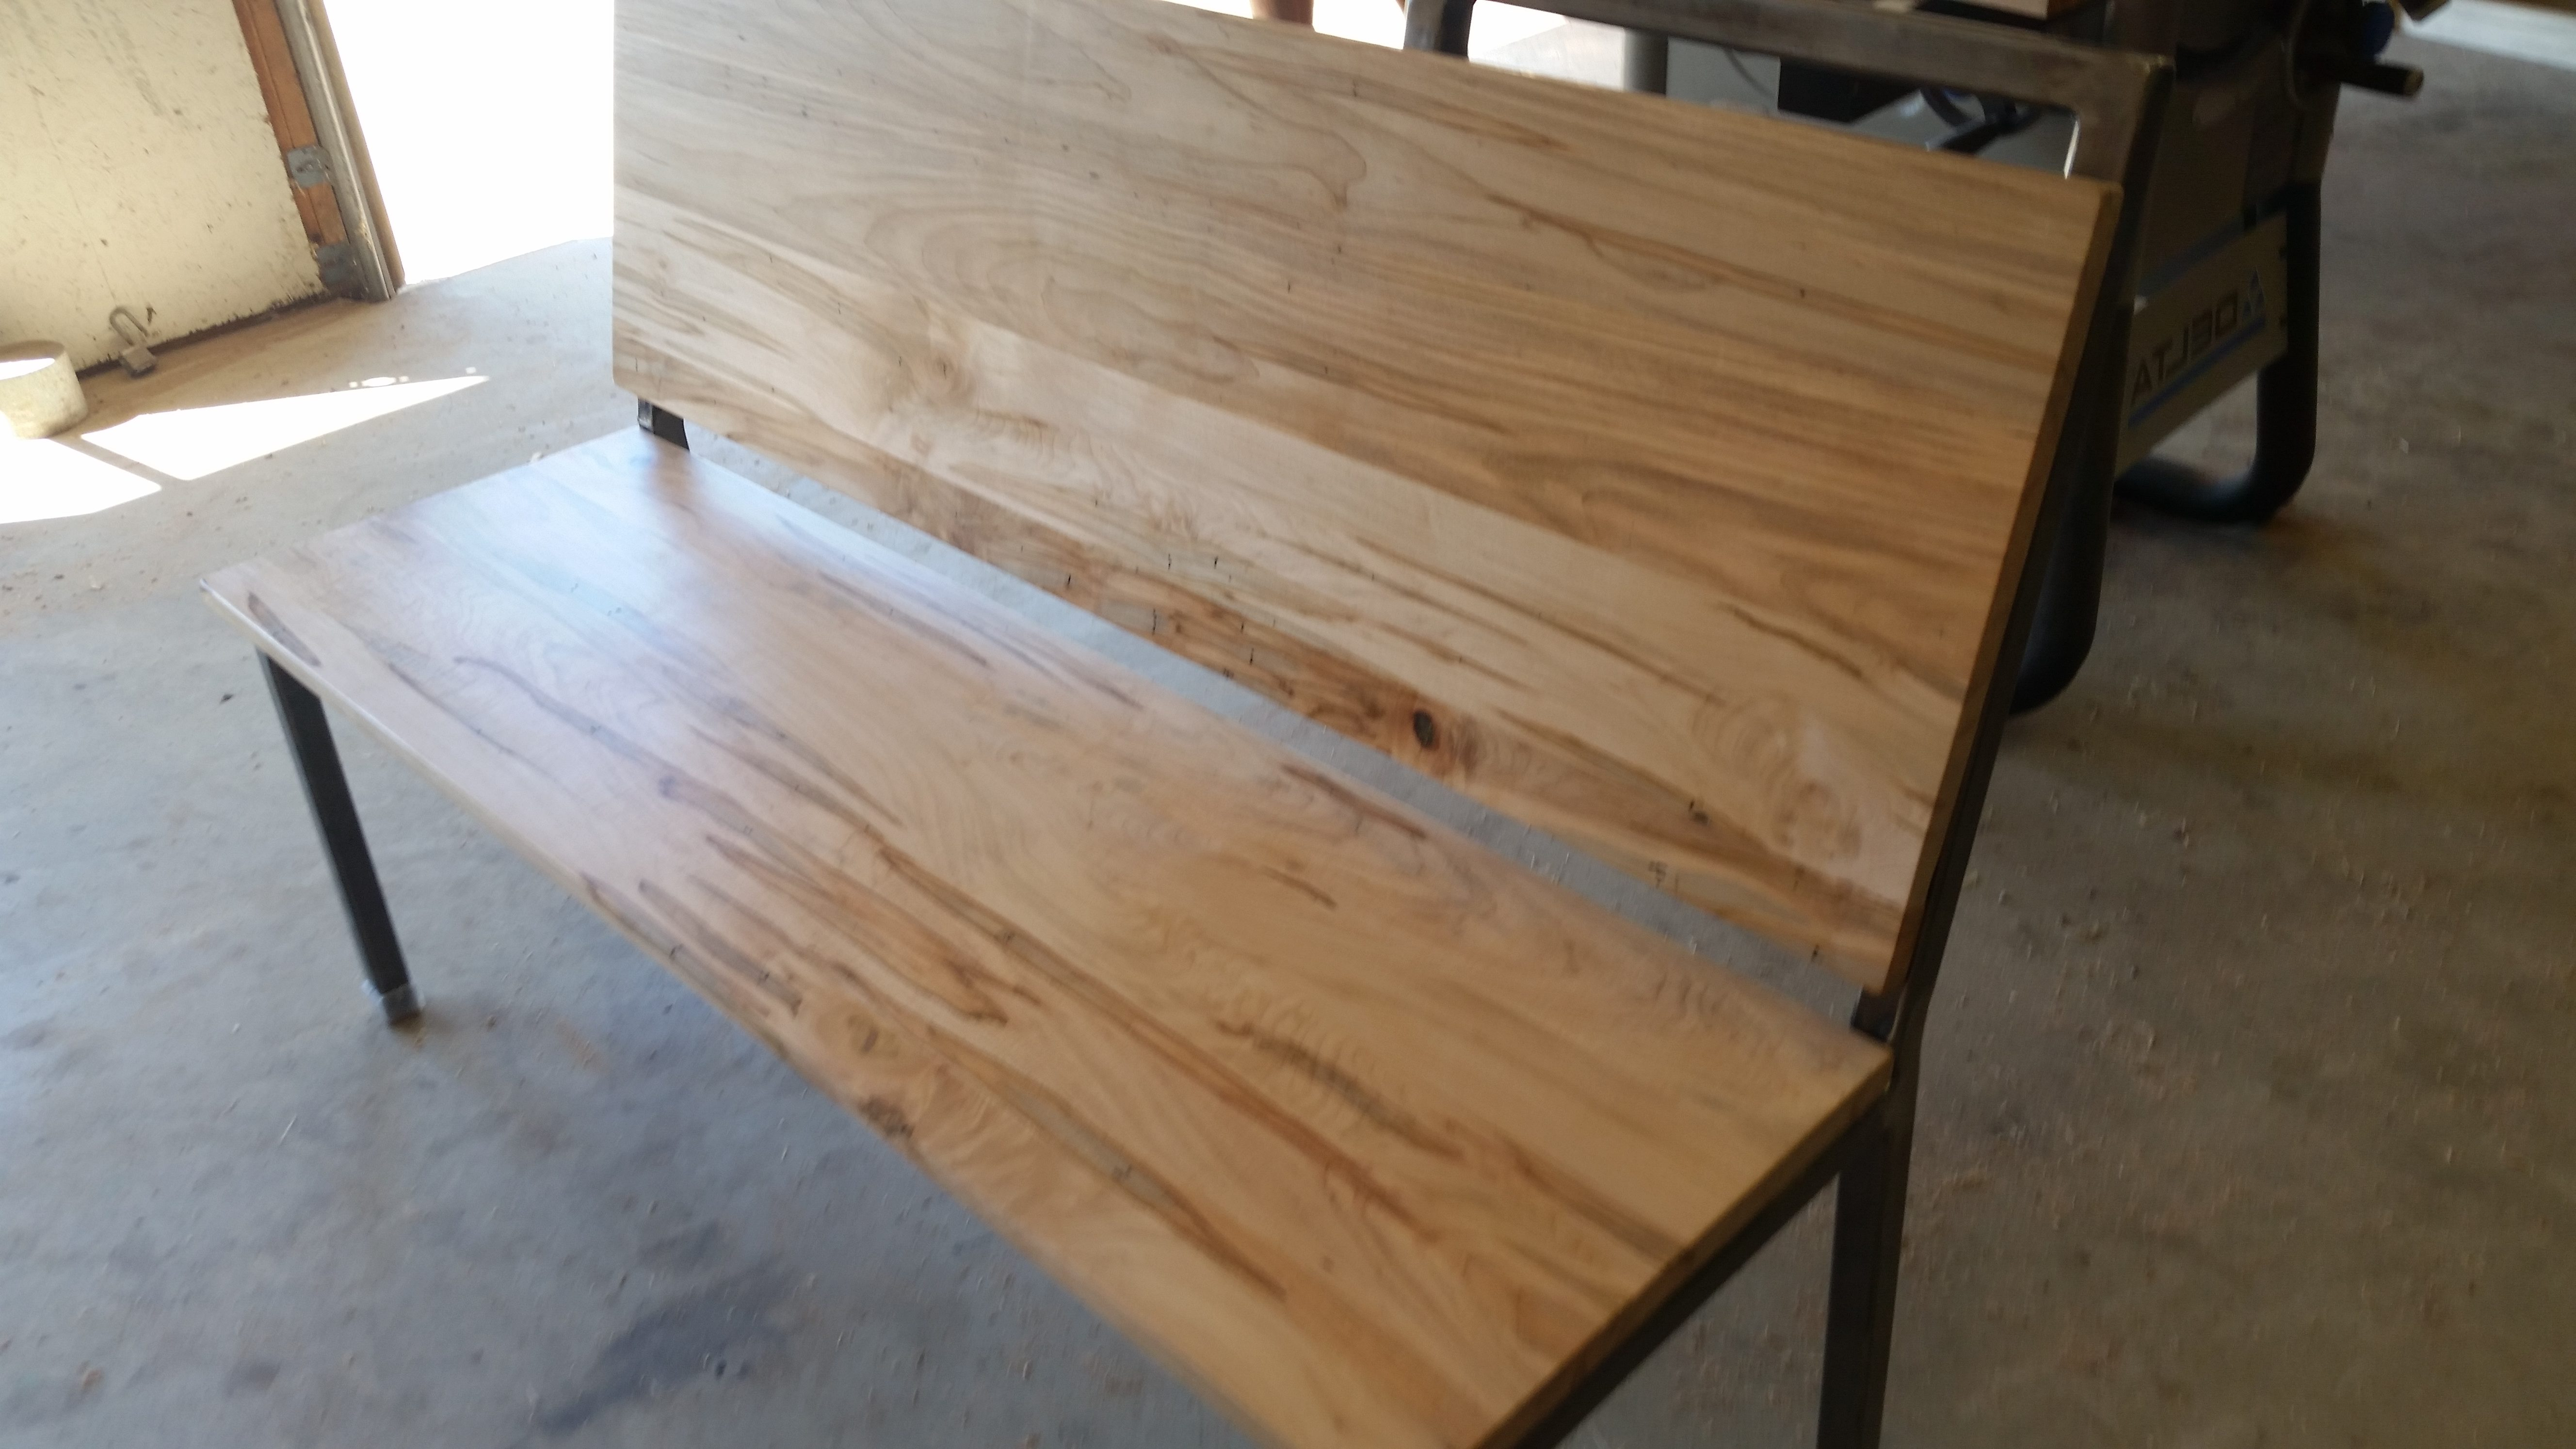 Ambrosia Maple Bench By Coastal Live Edge Custom Furniture Of Wilmington Nc